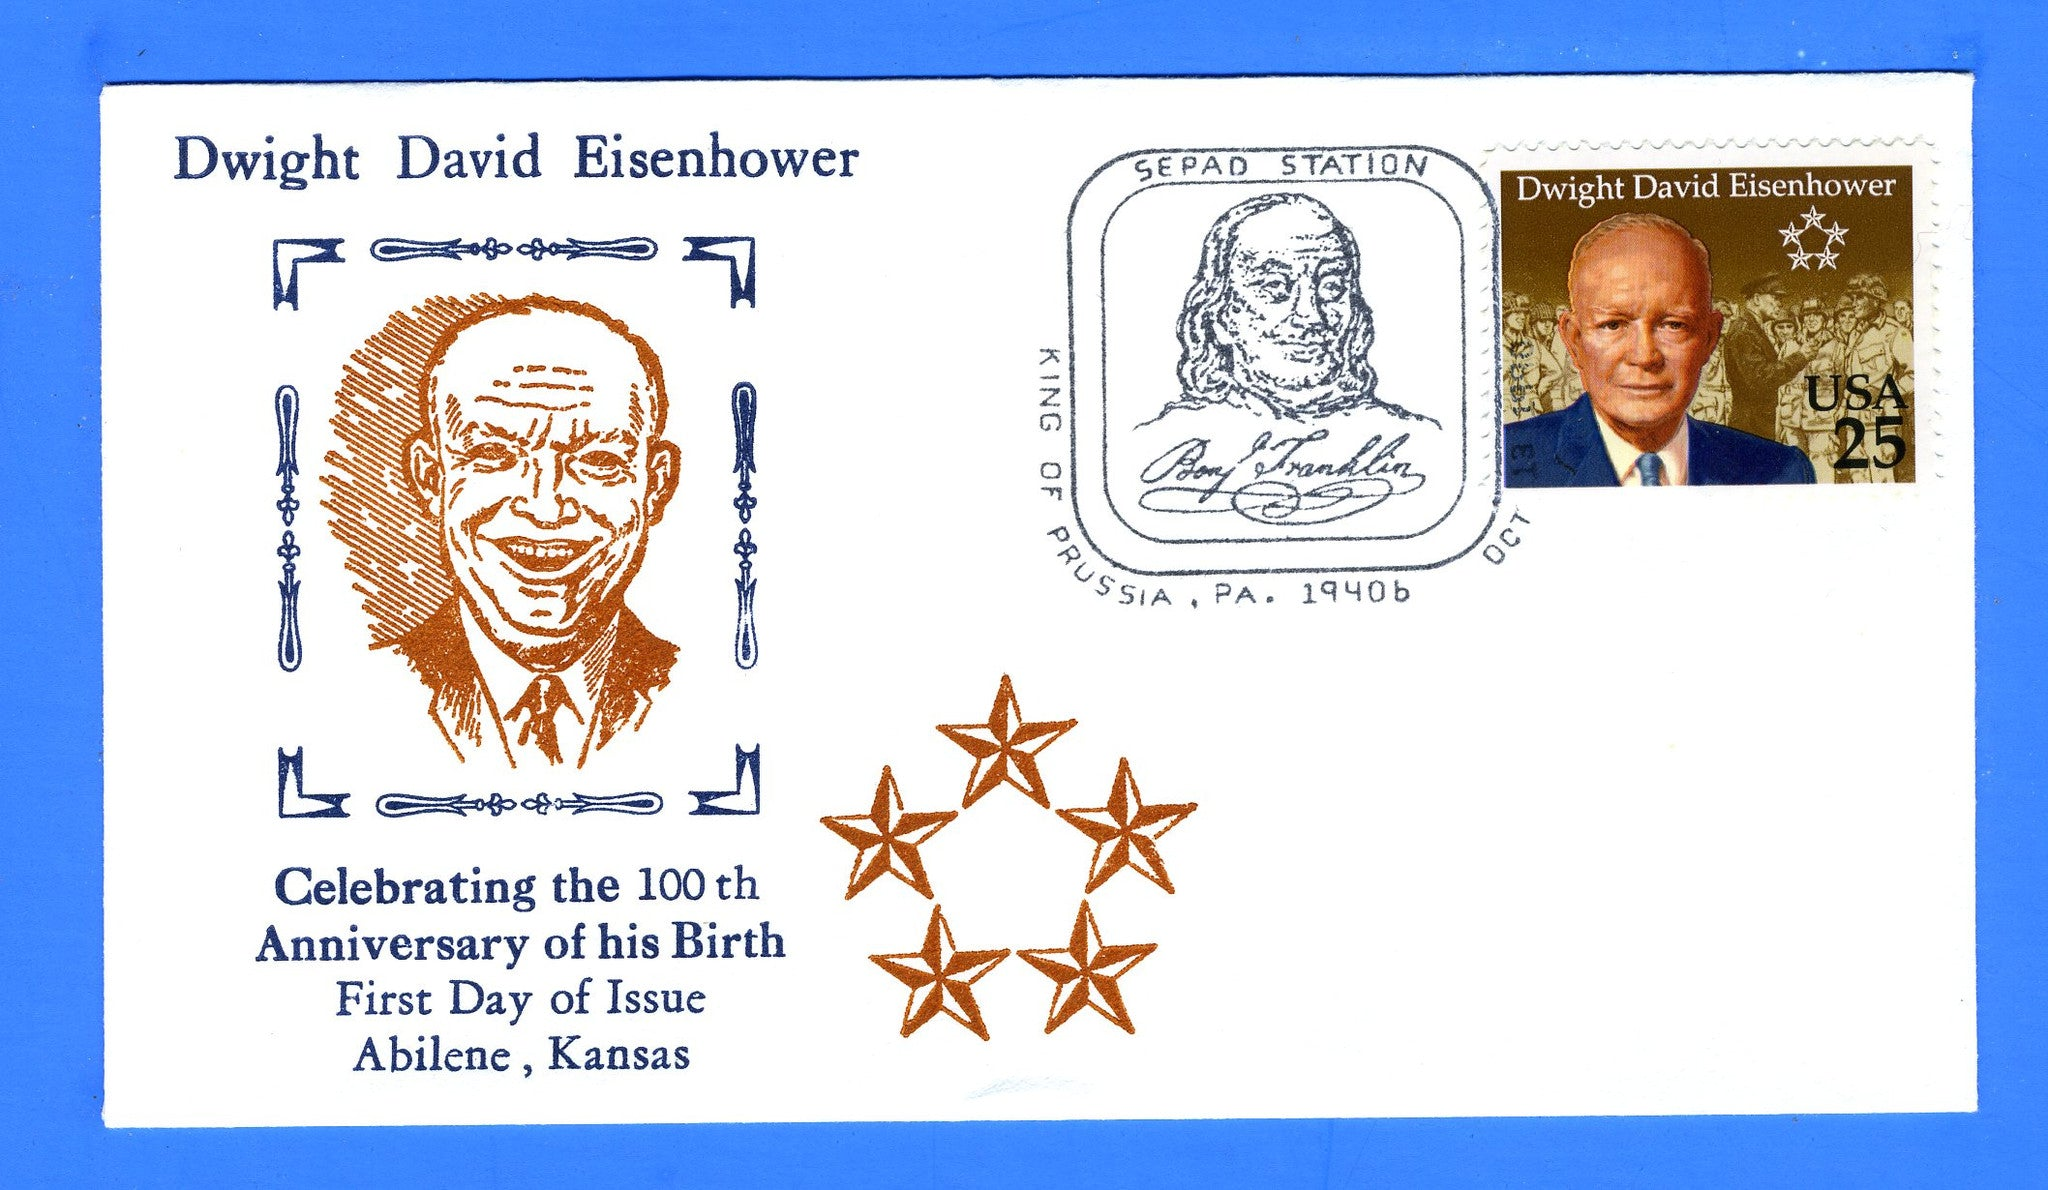 Scott 2513 25c Dwight D Eisenhower FDC by Blair Law - Unofficial King of Prussia, PA Cancel